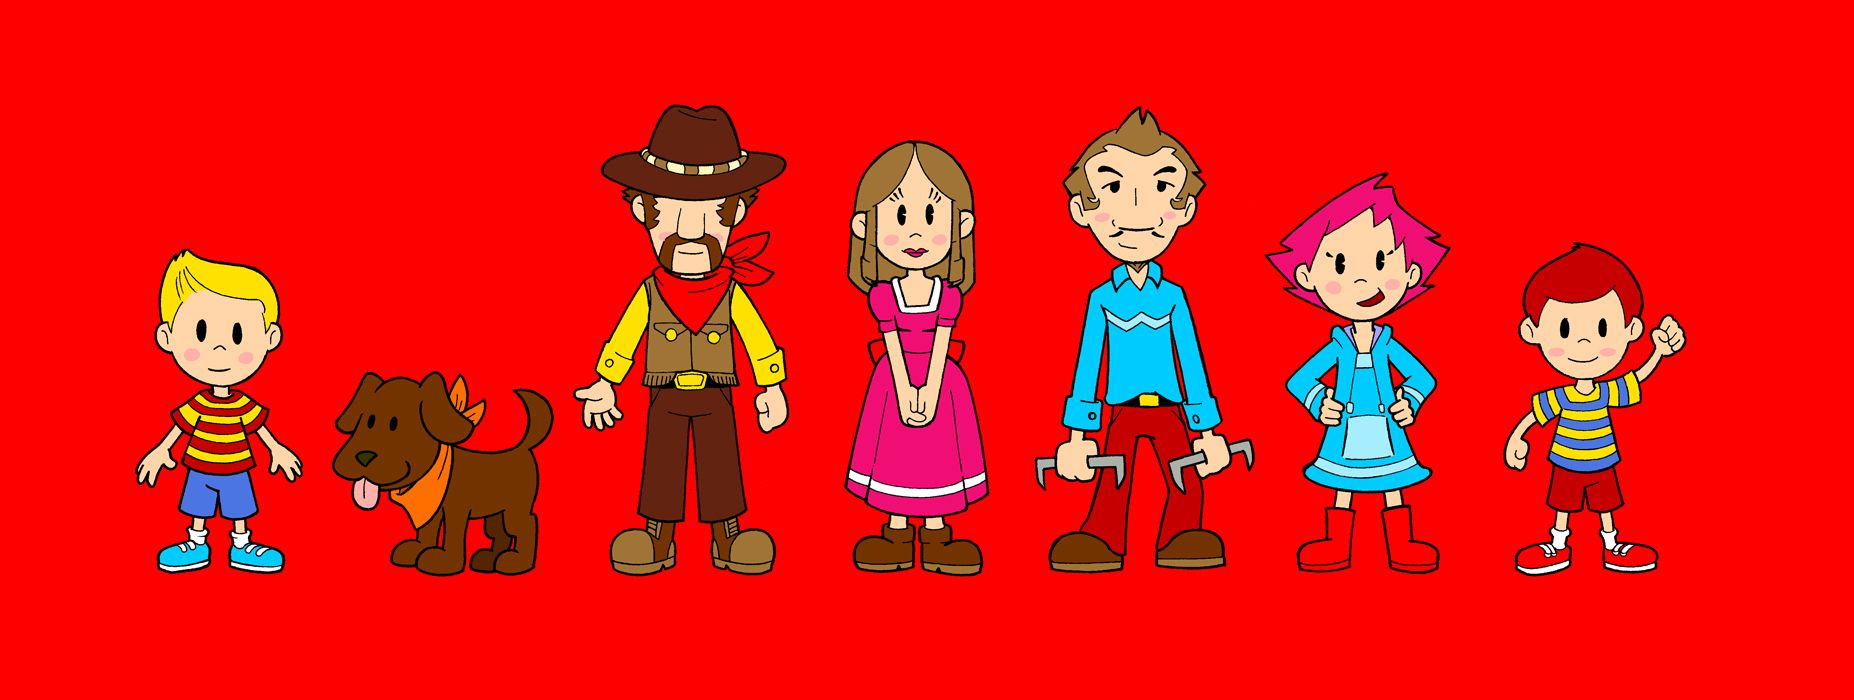 Mother 3 characters | Earthbound/Mother | Blonde kids, It